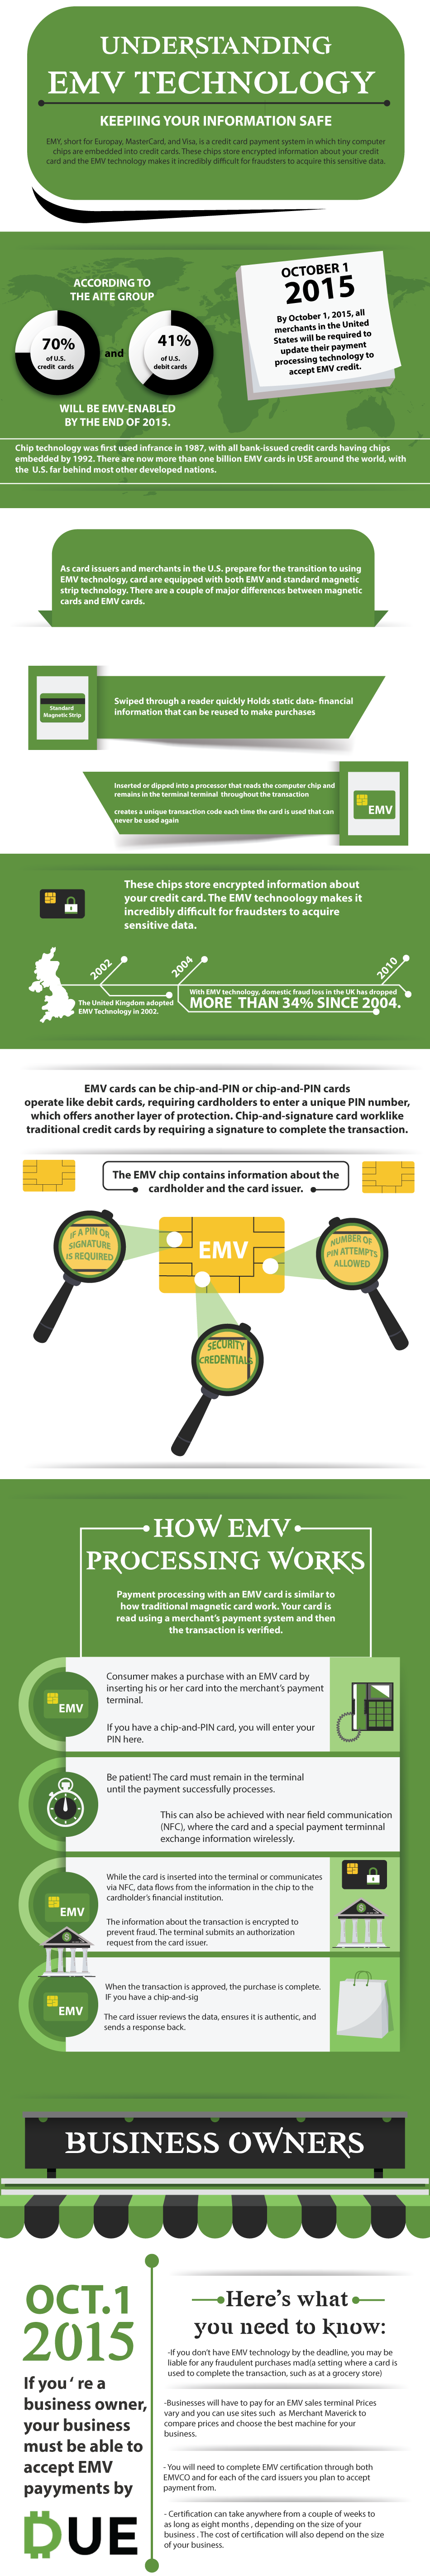 Understanding EMV Technology as a Business Owner - Due